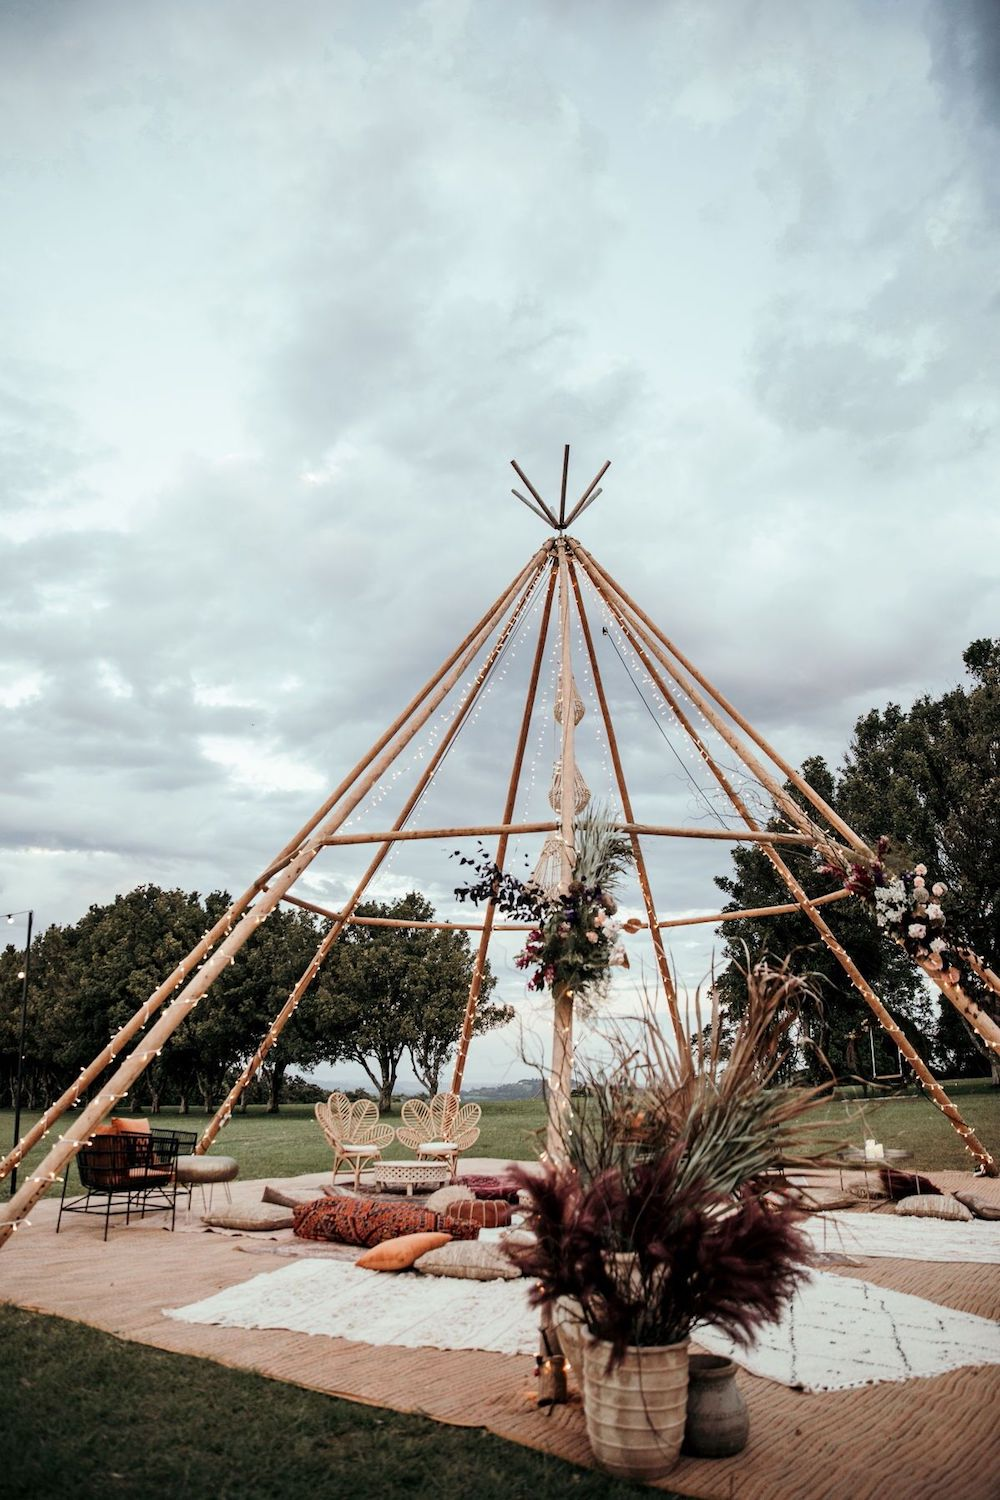 Tipi Wedding Styling Gold Coast Byron Bay7.jpeg